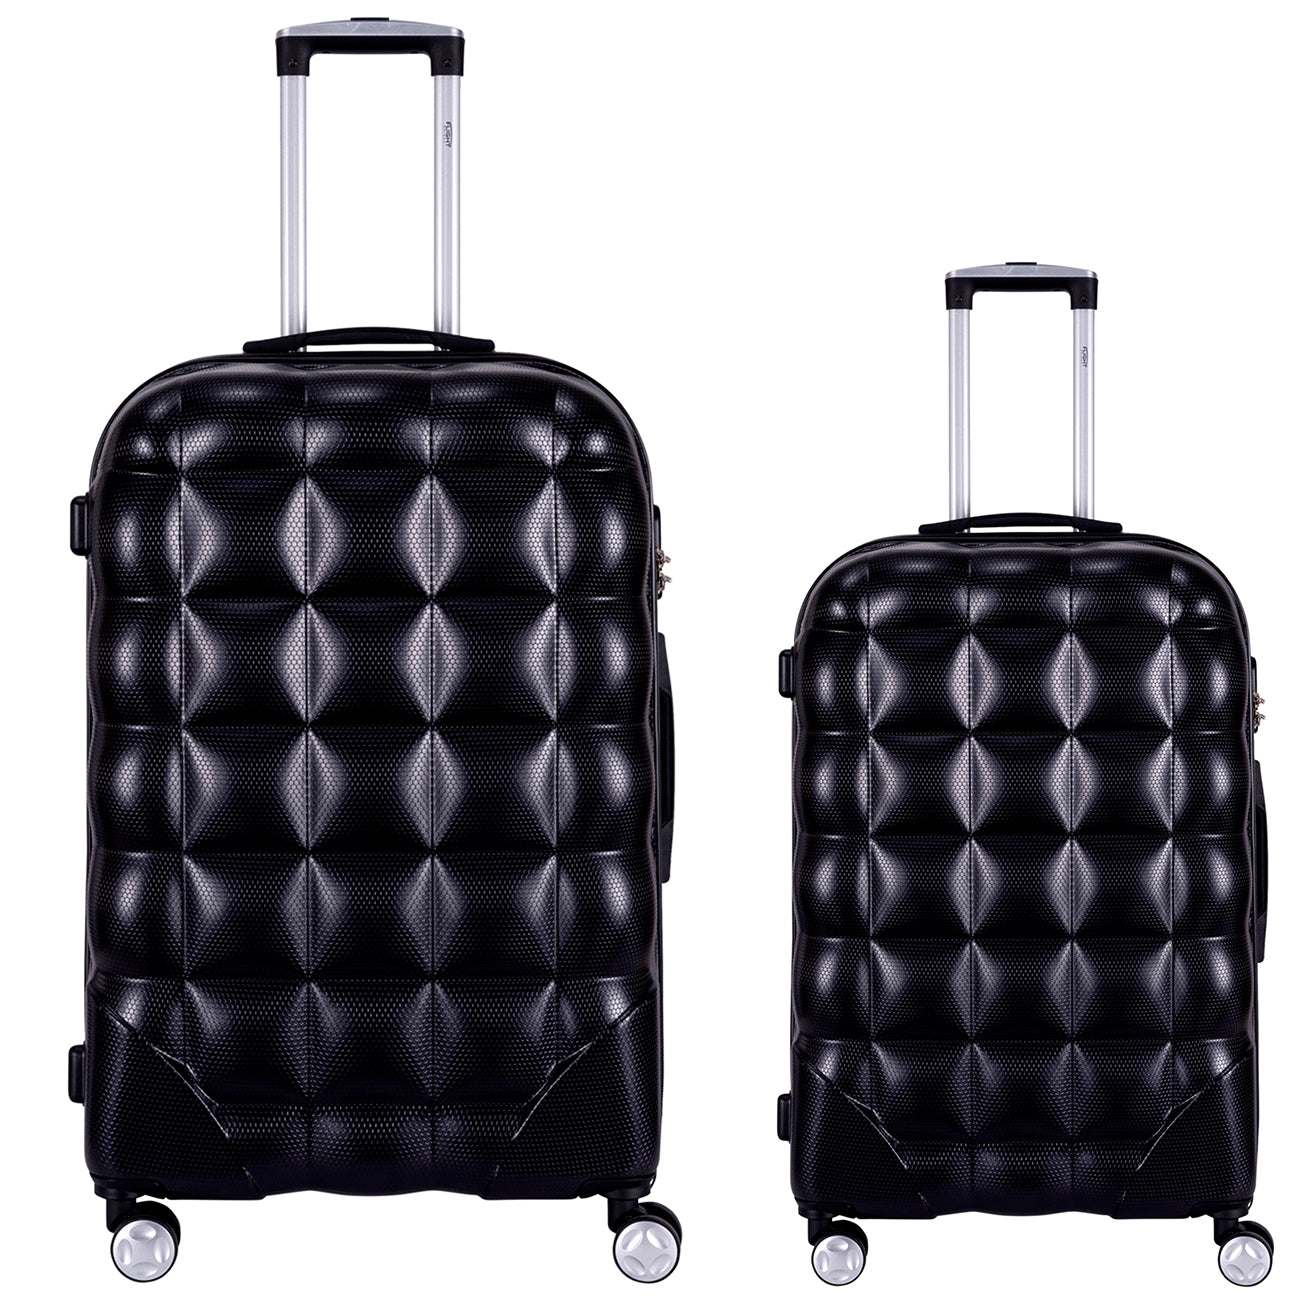 Bubble Suitcase Ryanair easyJet Jet2 Approved Hardcase Suitcases Size Options